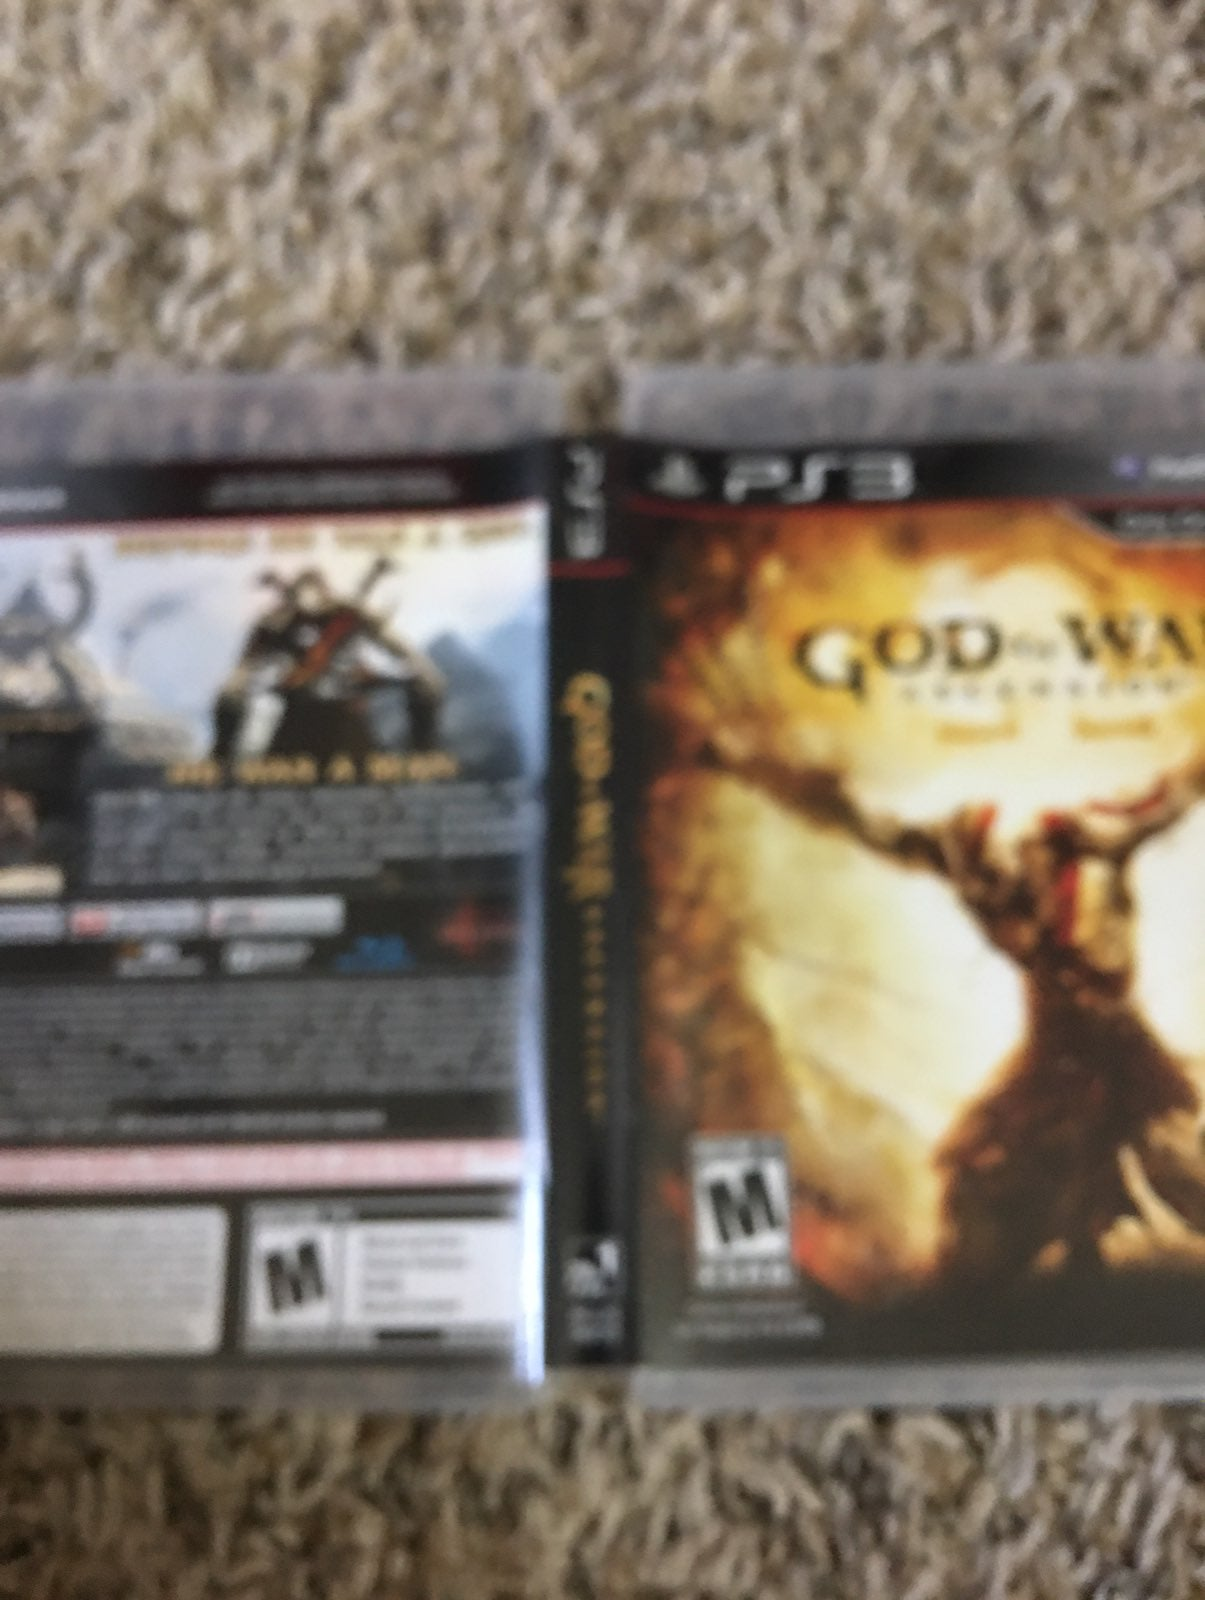 God of War: Ascension on Playstation 3